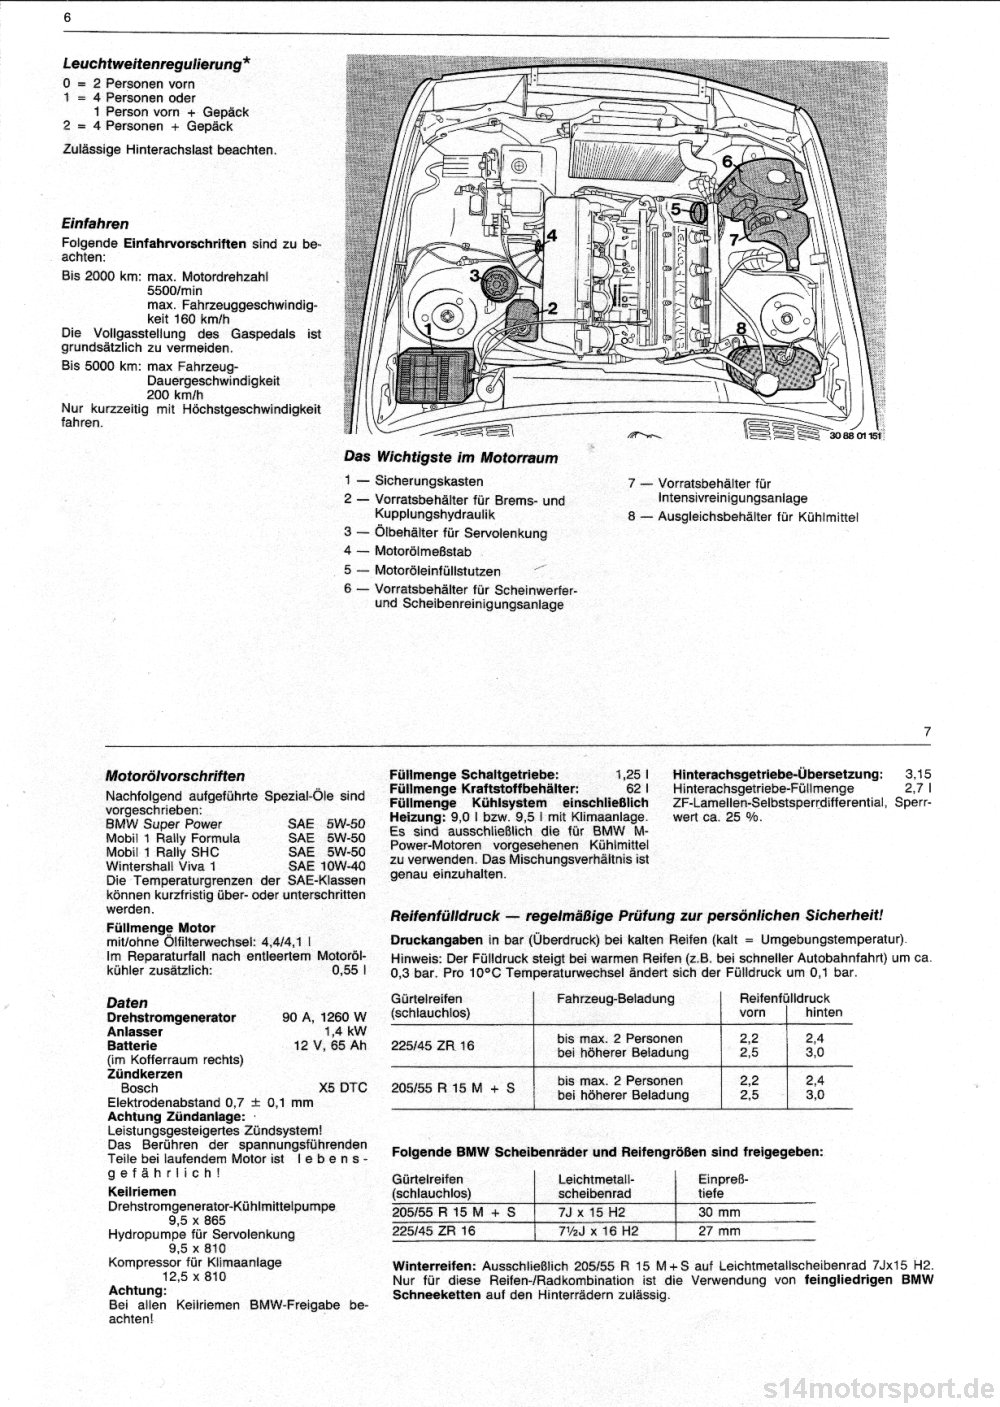 T299 Bmw Motorsport M3 E30 additionally Bmw E30 Air Conditioning Wiring Diagram as well Rear Axle Support Wheel Suspension moreover Bmw E30e36 Radio Head Unit Installation 3 Series 1983 1999 With Regard To Bmw 3 Series Wiring Diagram further Viewtopic. on bmw e30